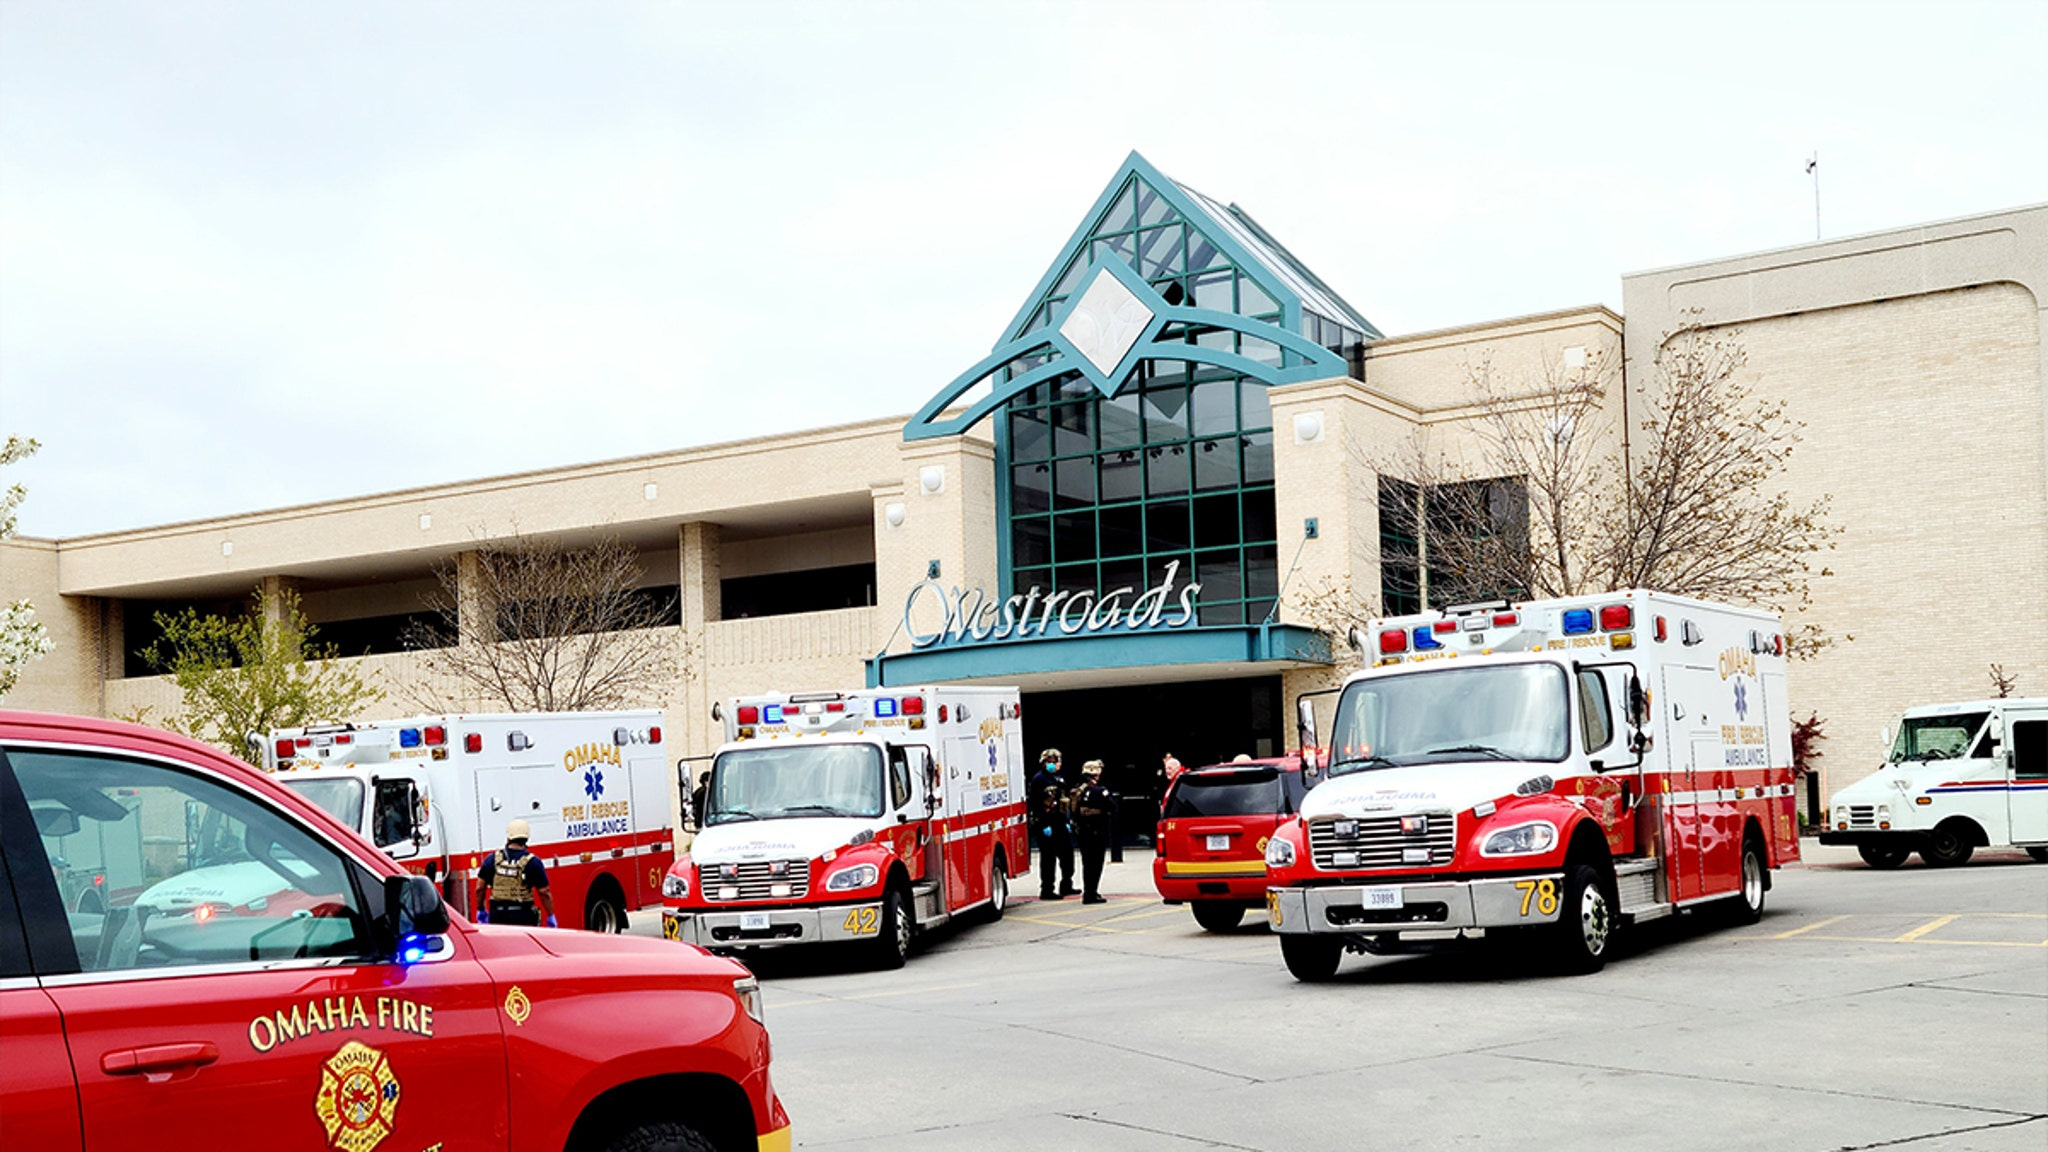 Police Respond to Reported Shooting at Nebraska Mall, One Left Dead thumbnail